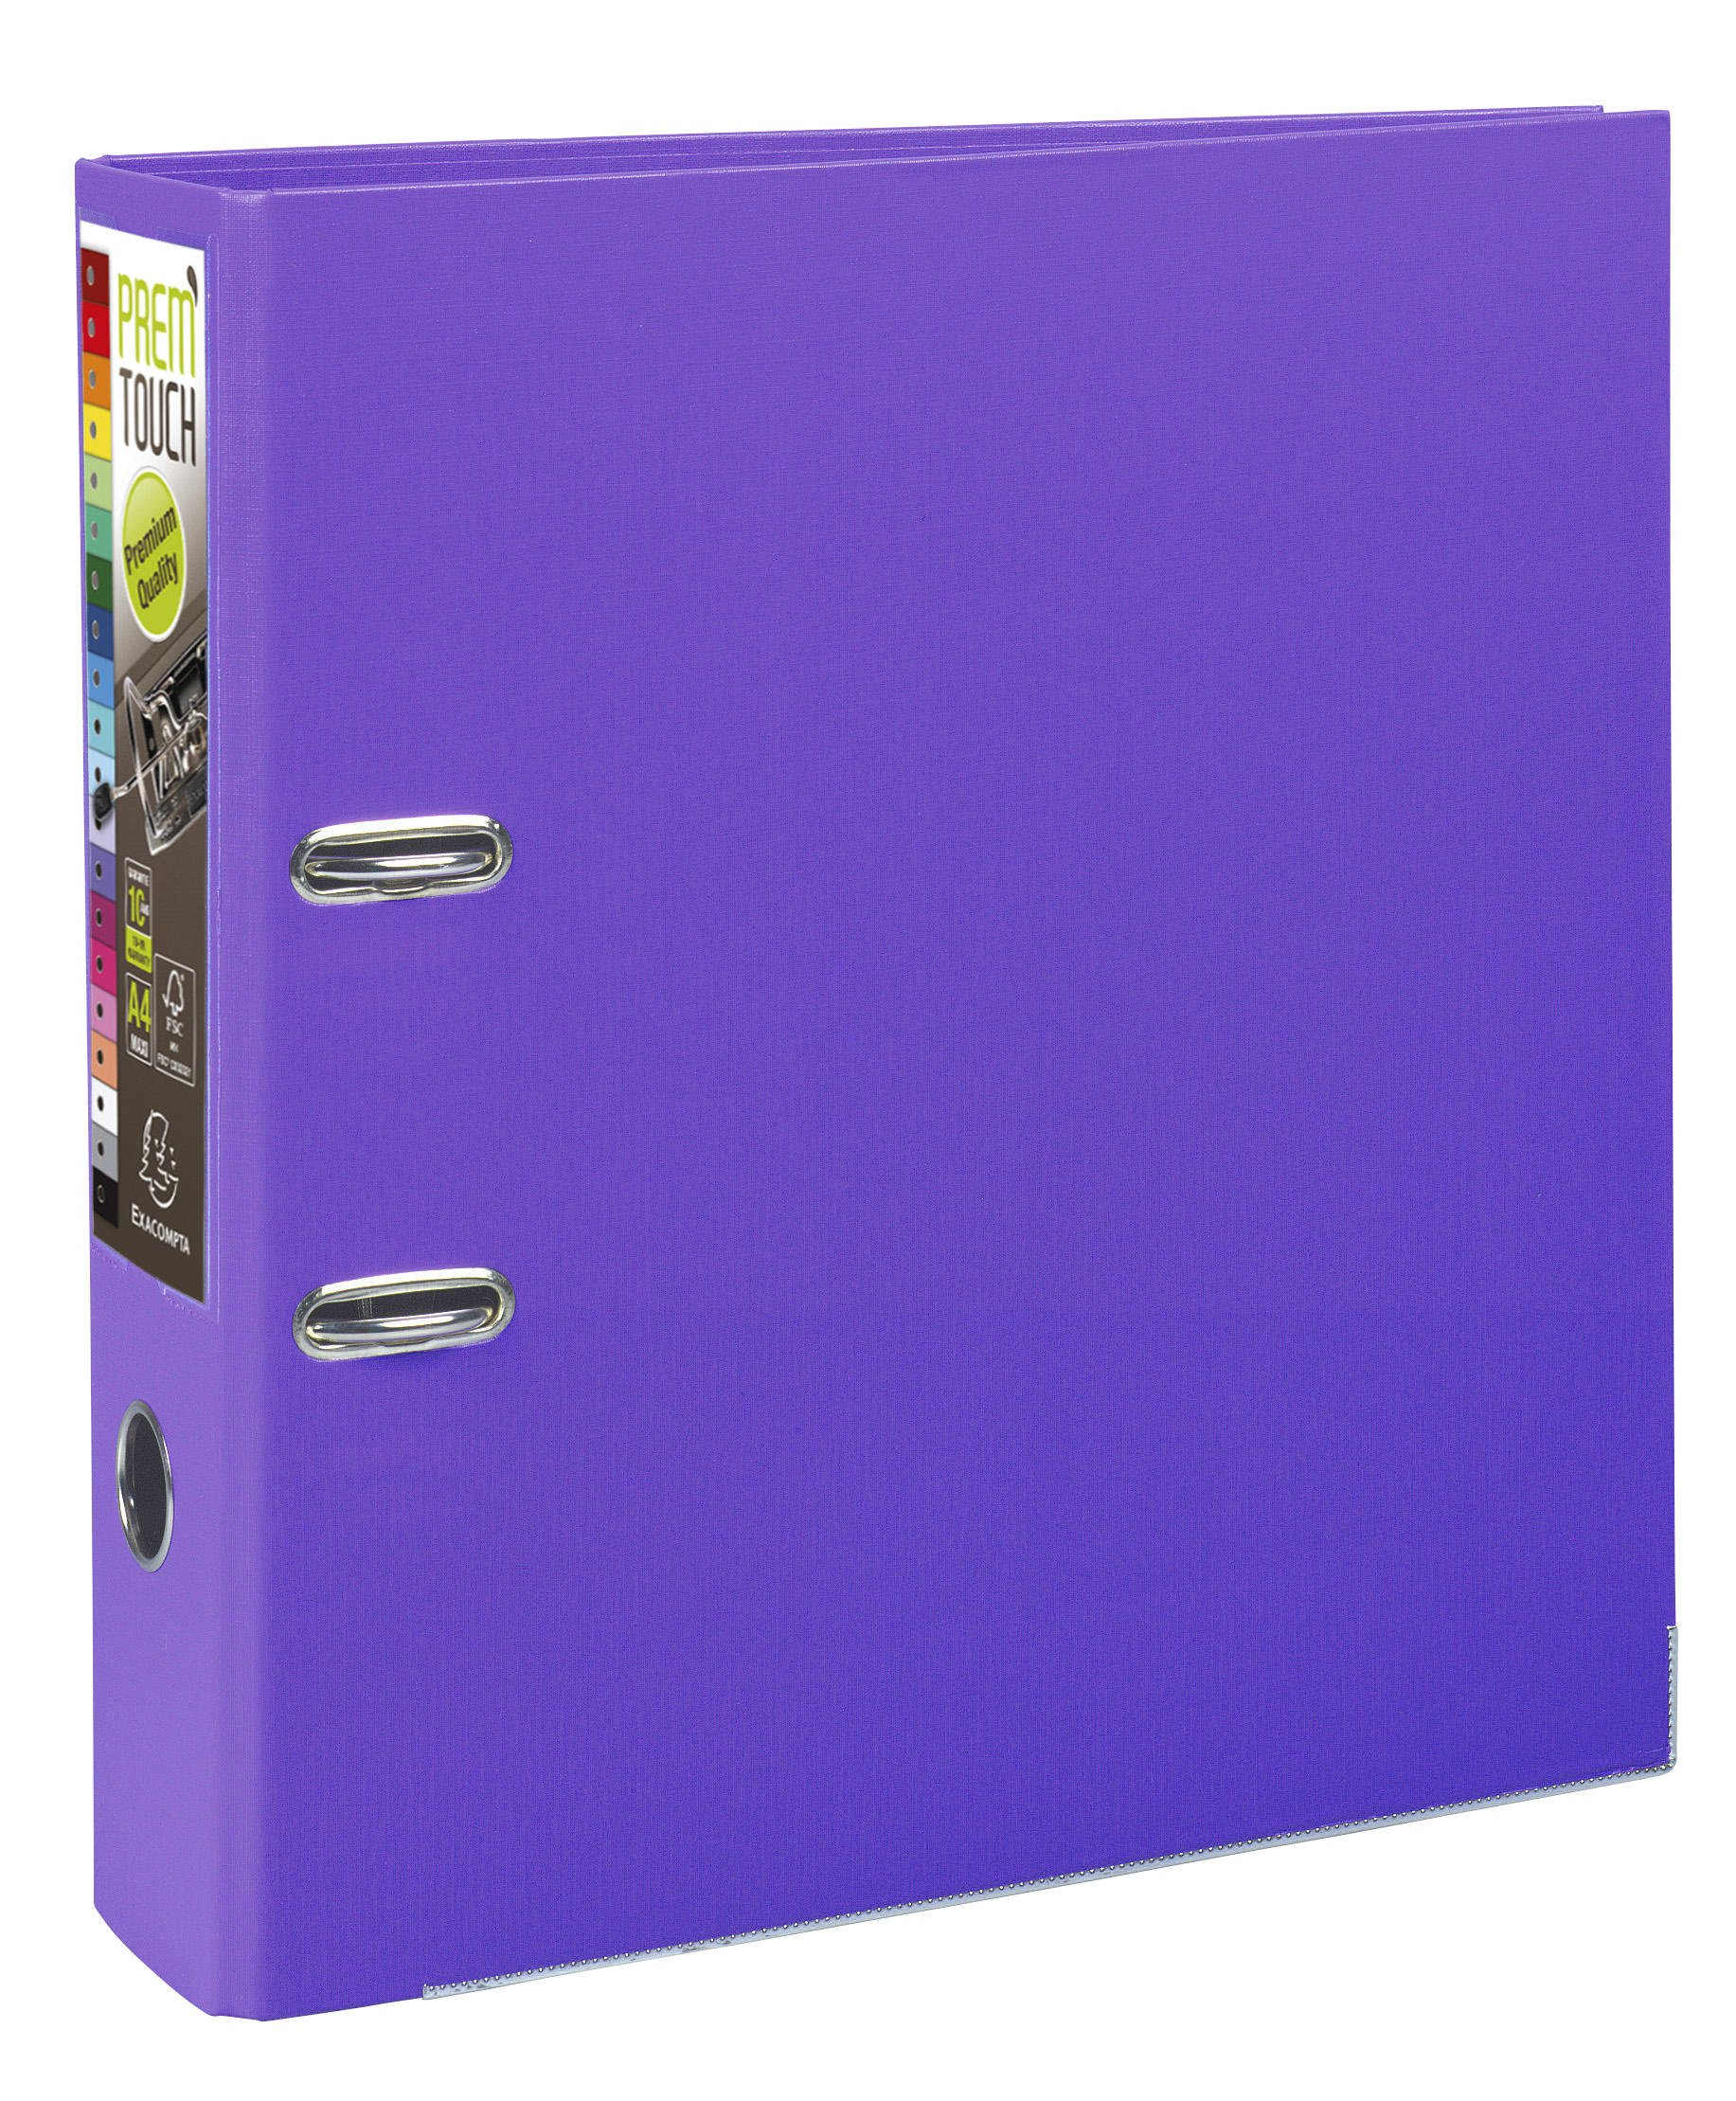 Exacompta A4 Maxi Prem'Touch PP Lever Arch File, 80 mm Spine, Dark Purple